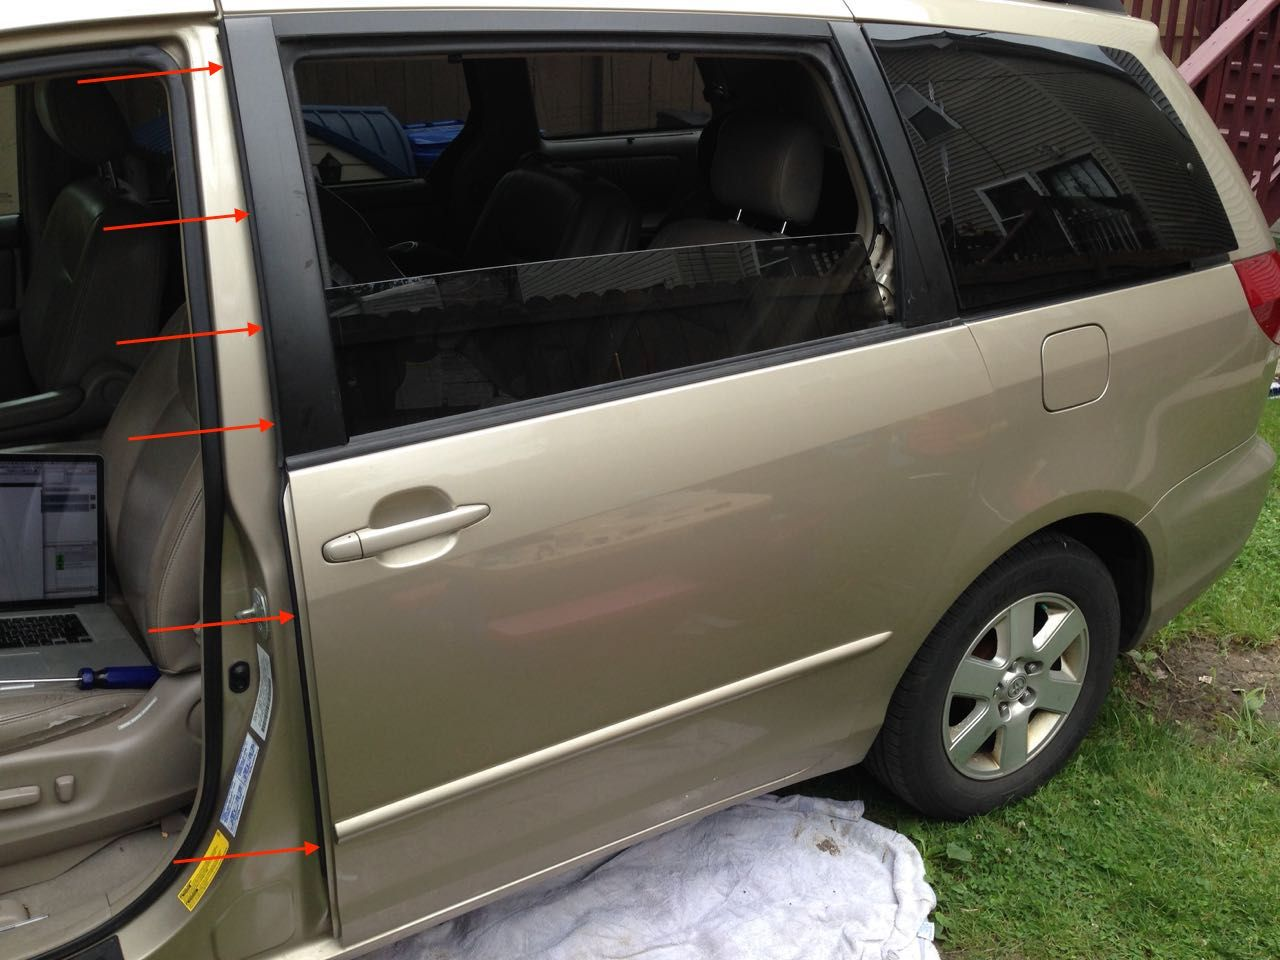 Sliding Door Crush Close Sensor Toyota Sienna Sliding Doors Toyota